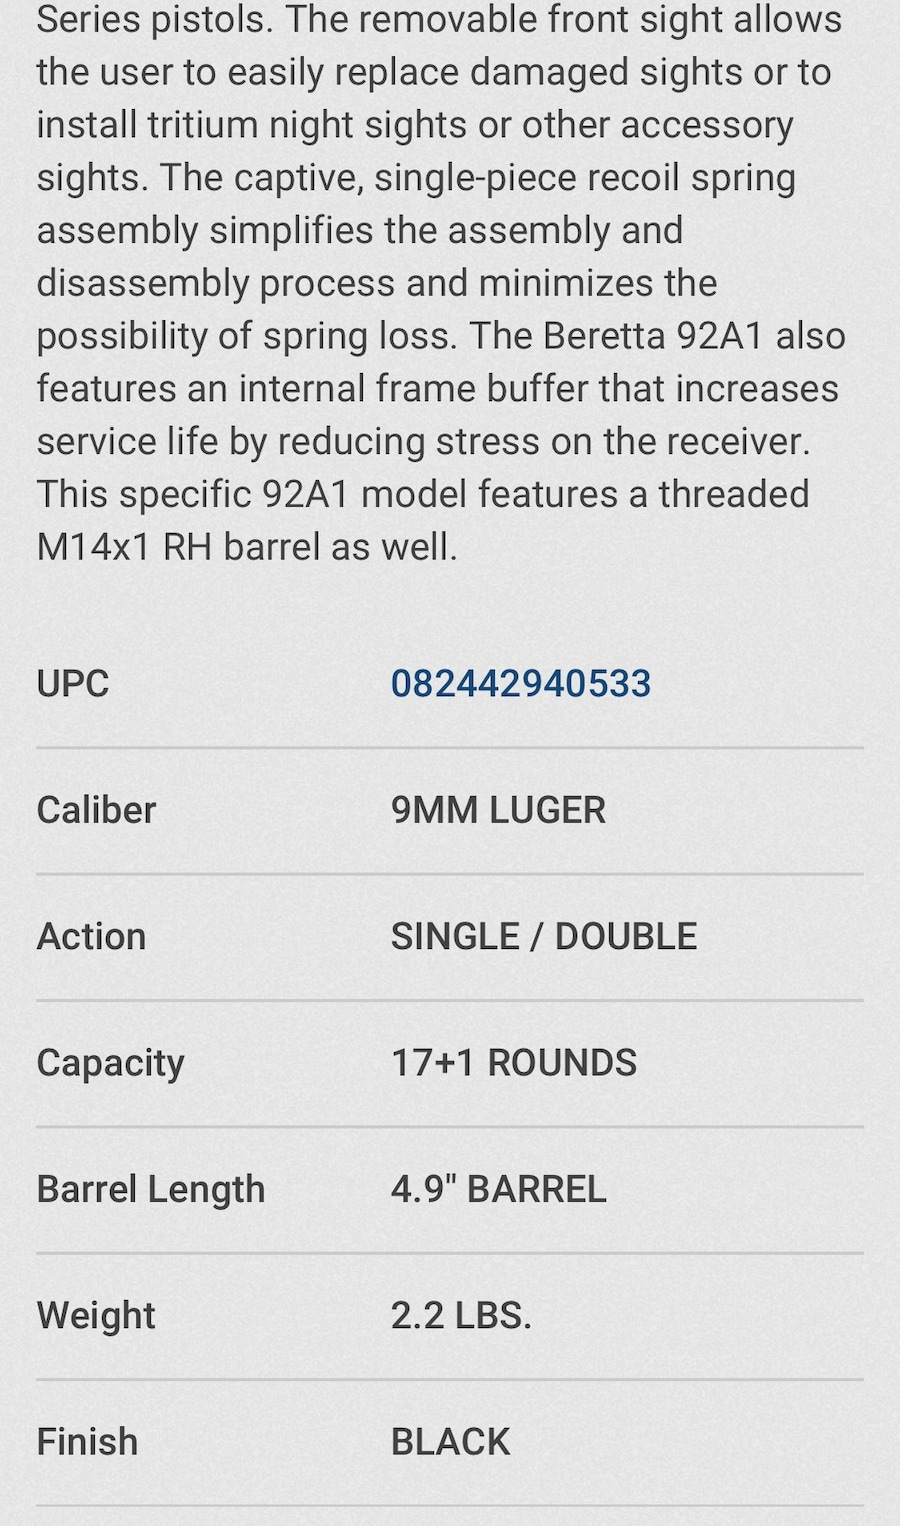 BERETTA 92 A1 Theaded Barrel